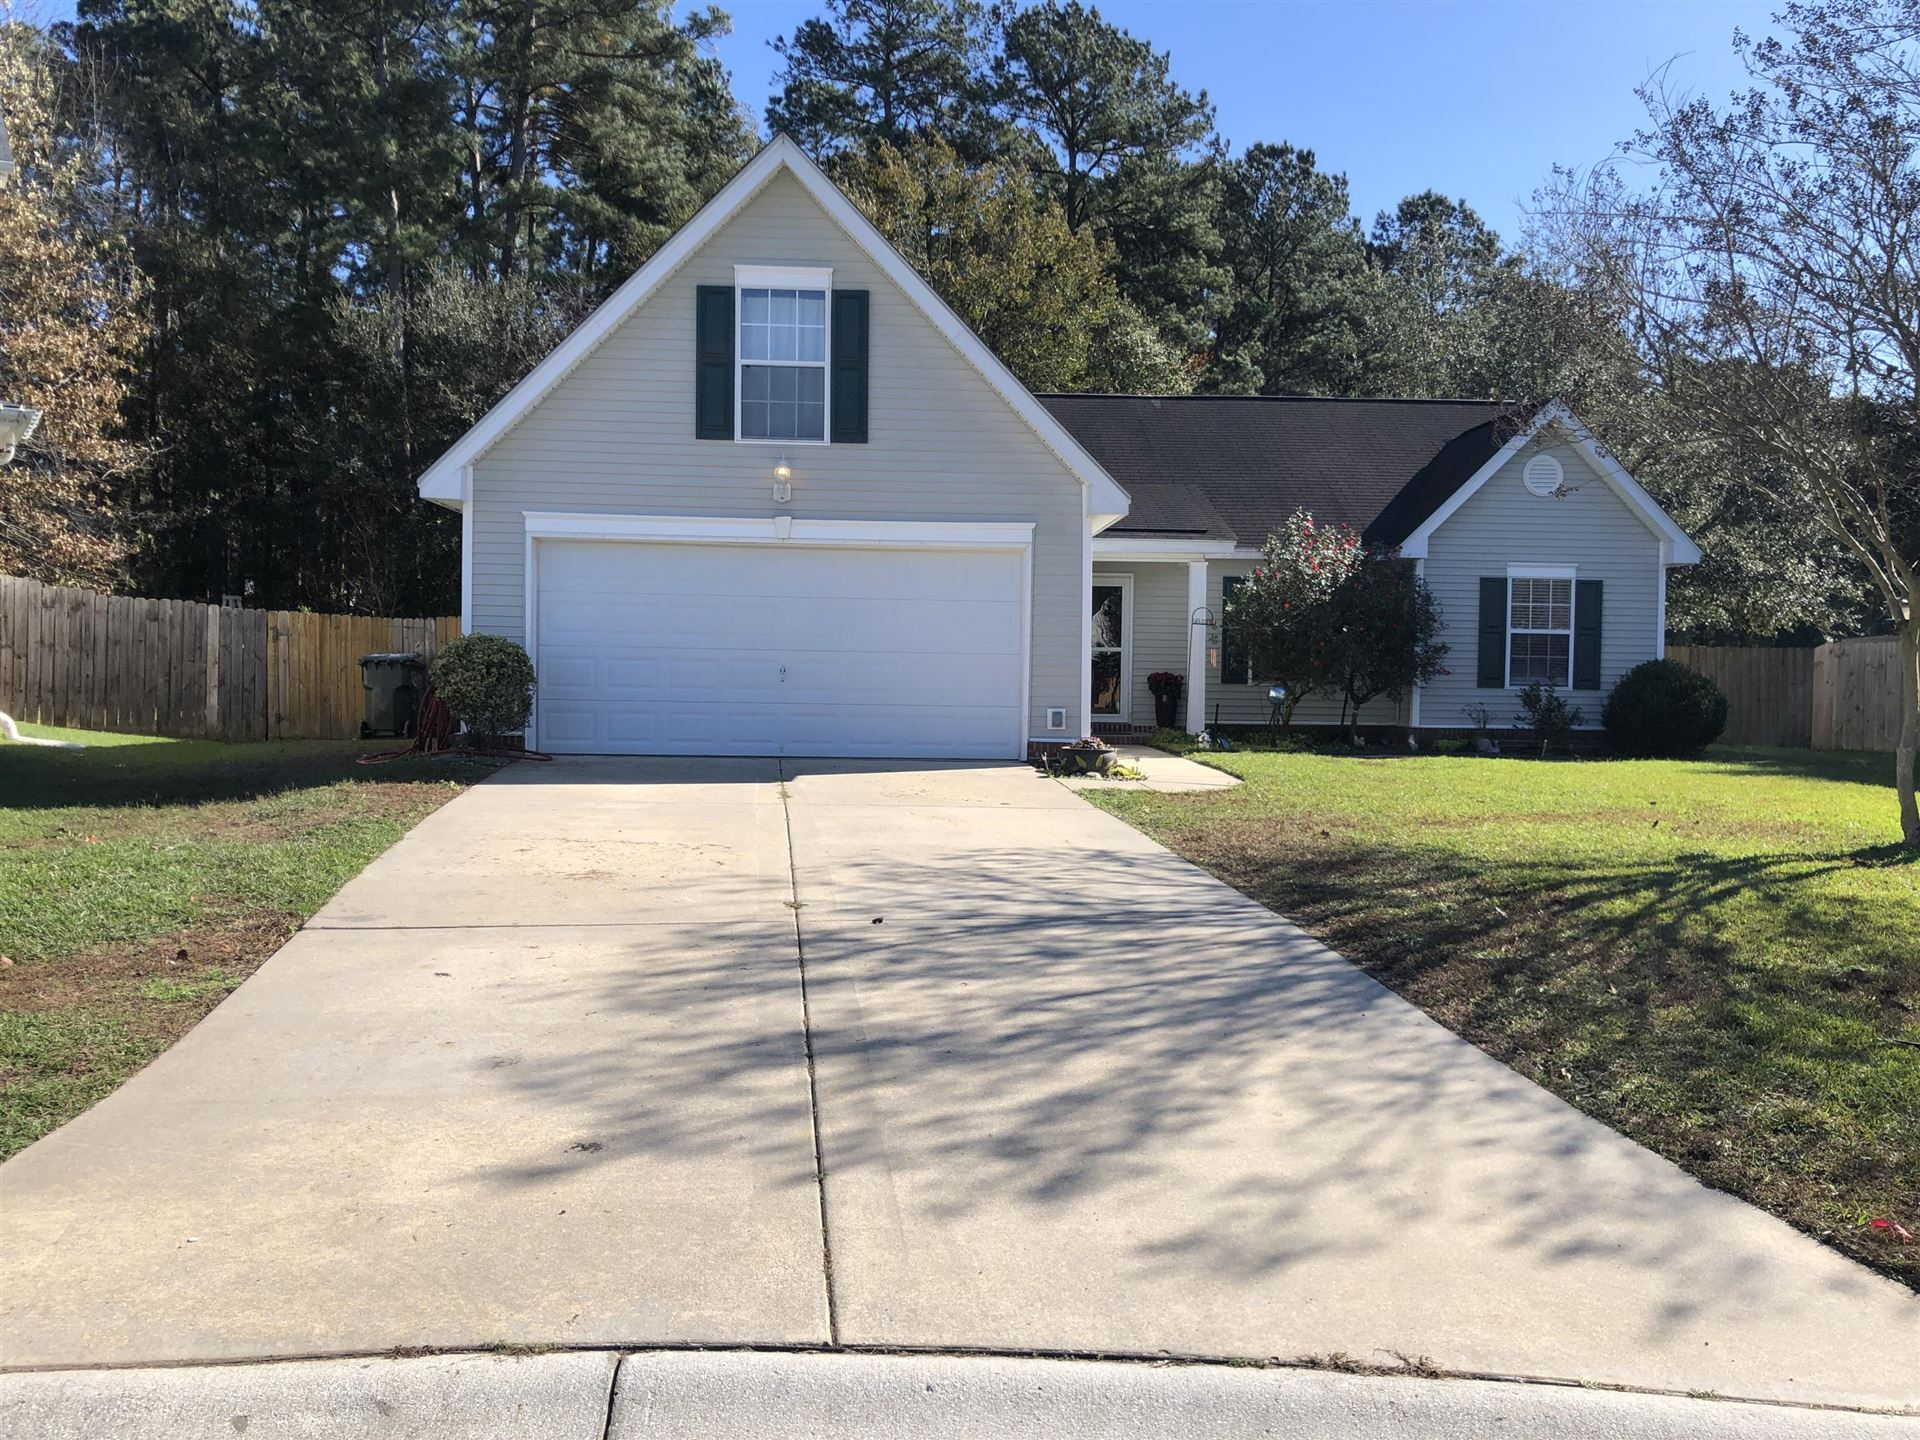 Photo of 2210 Sandtuck Circle, Summerville, SC 29483 (MLS # 20032100)